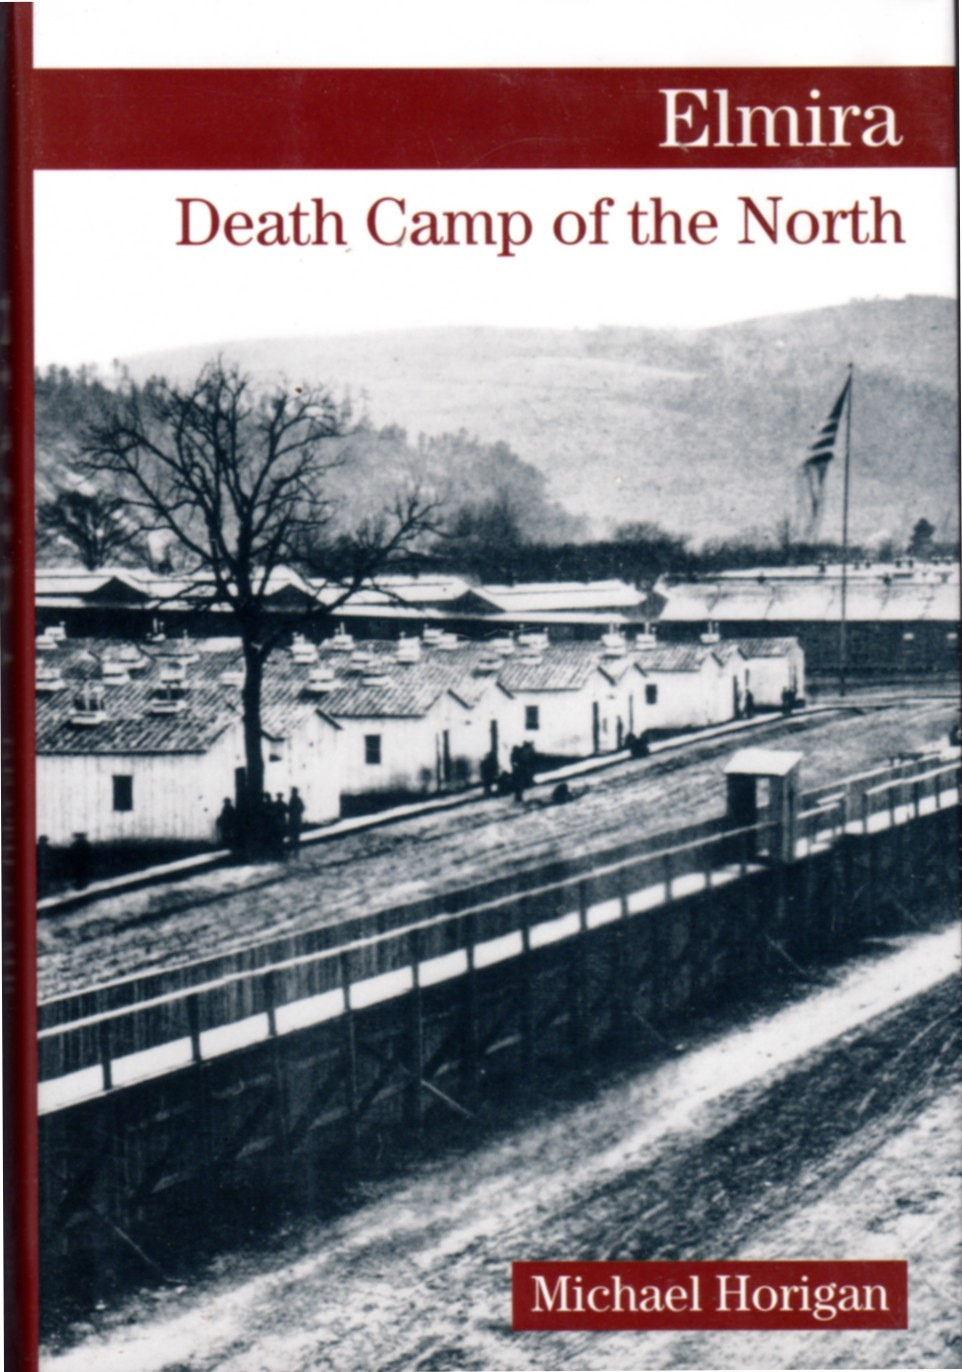 Image for Elmira Death Camp of the North